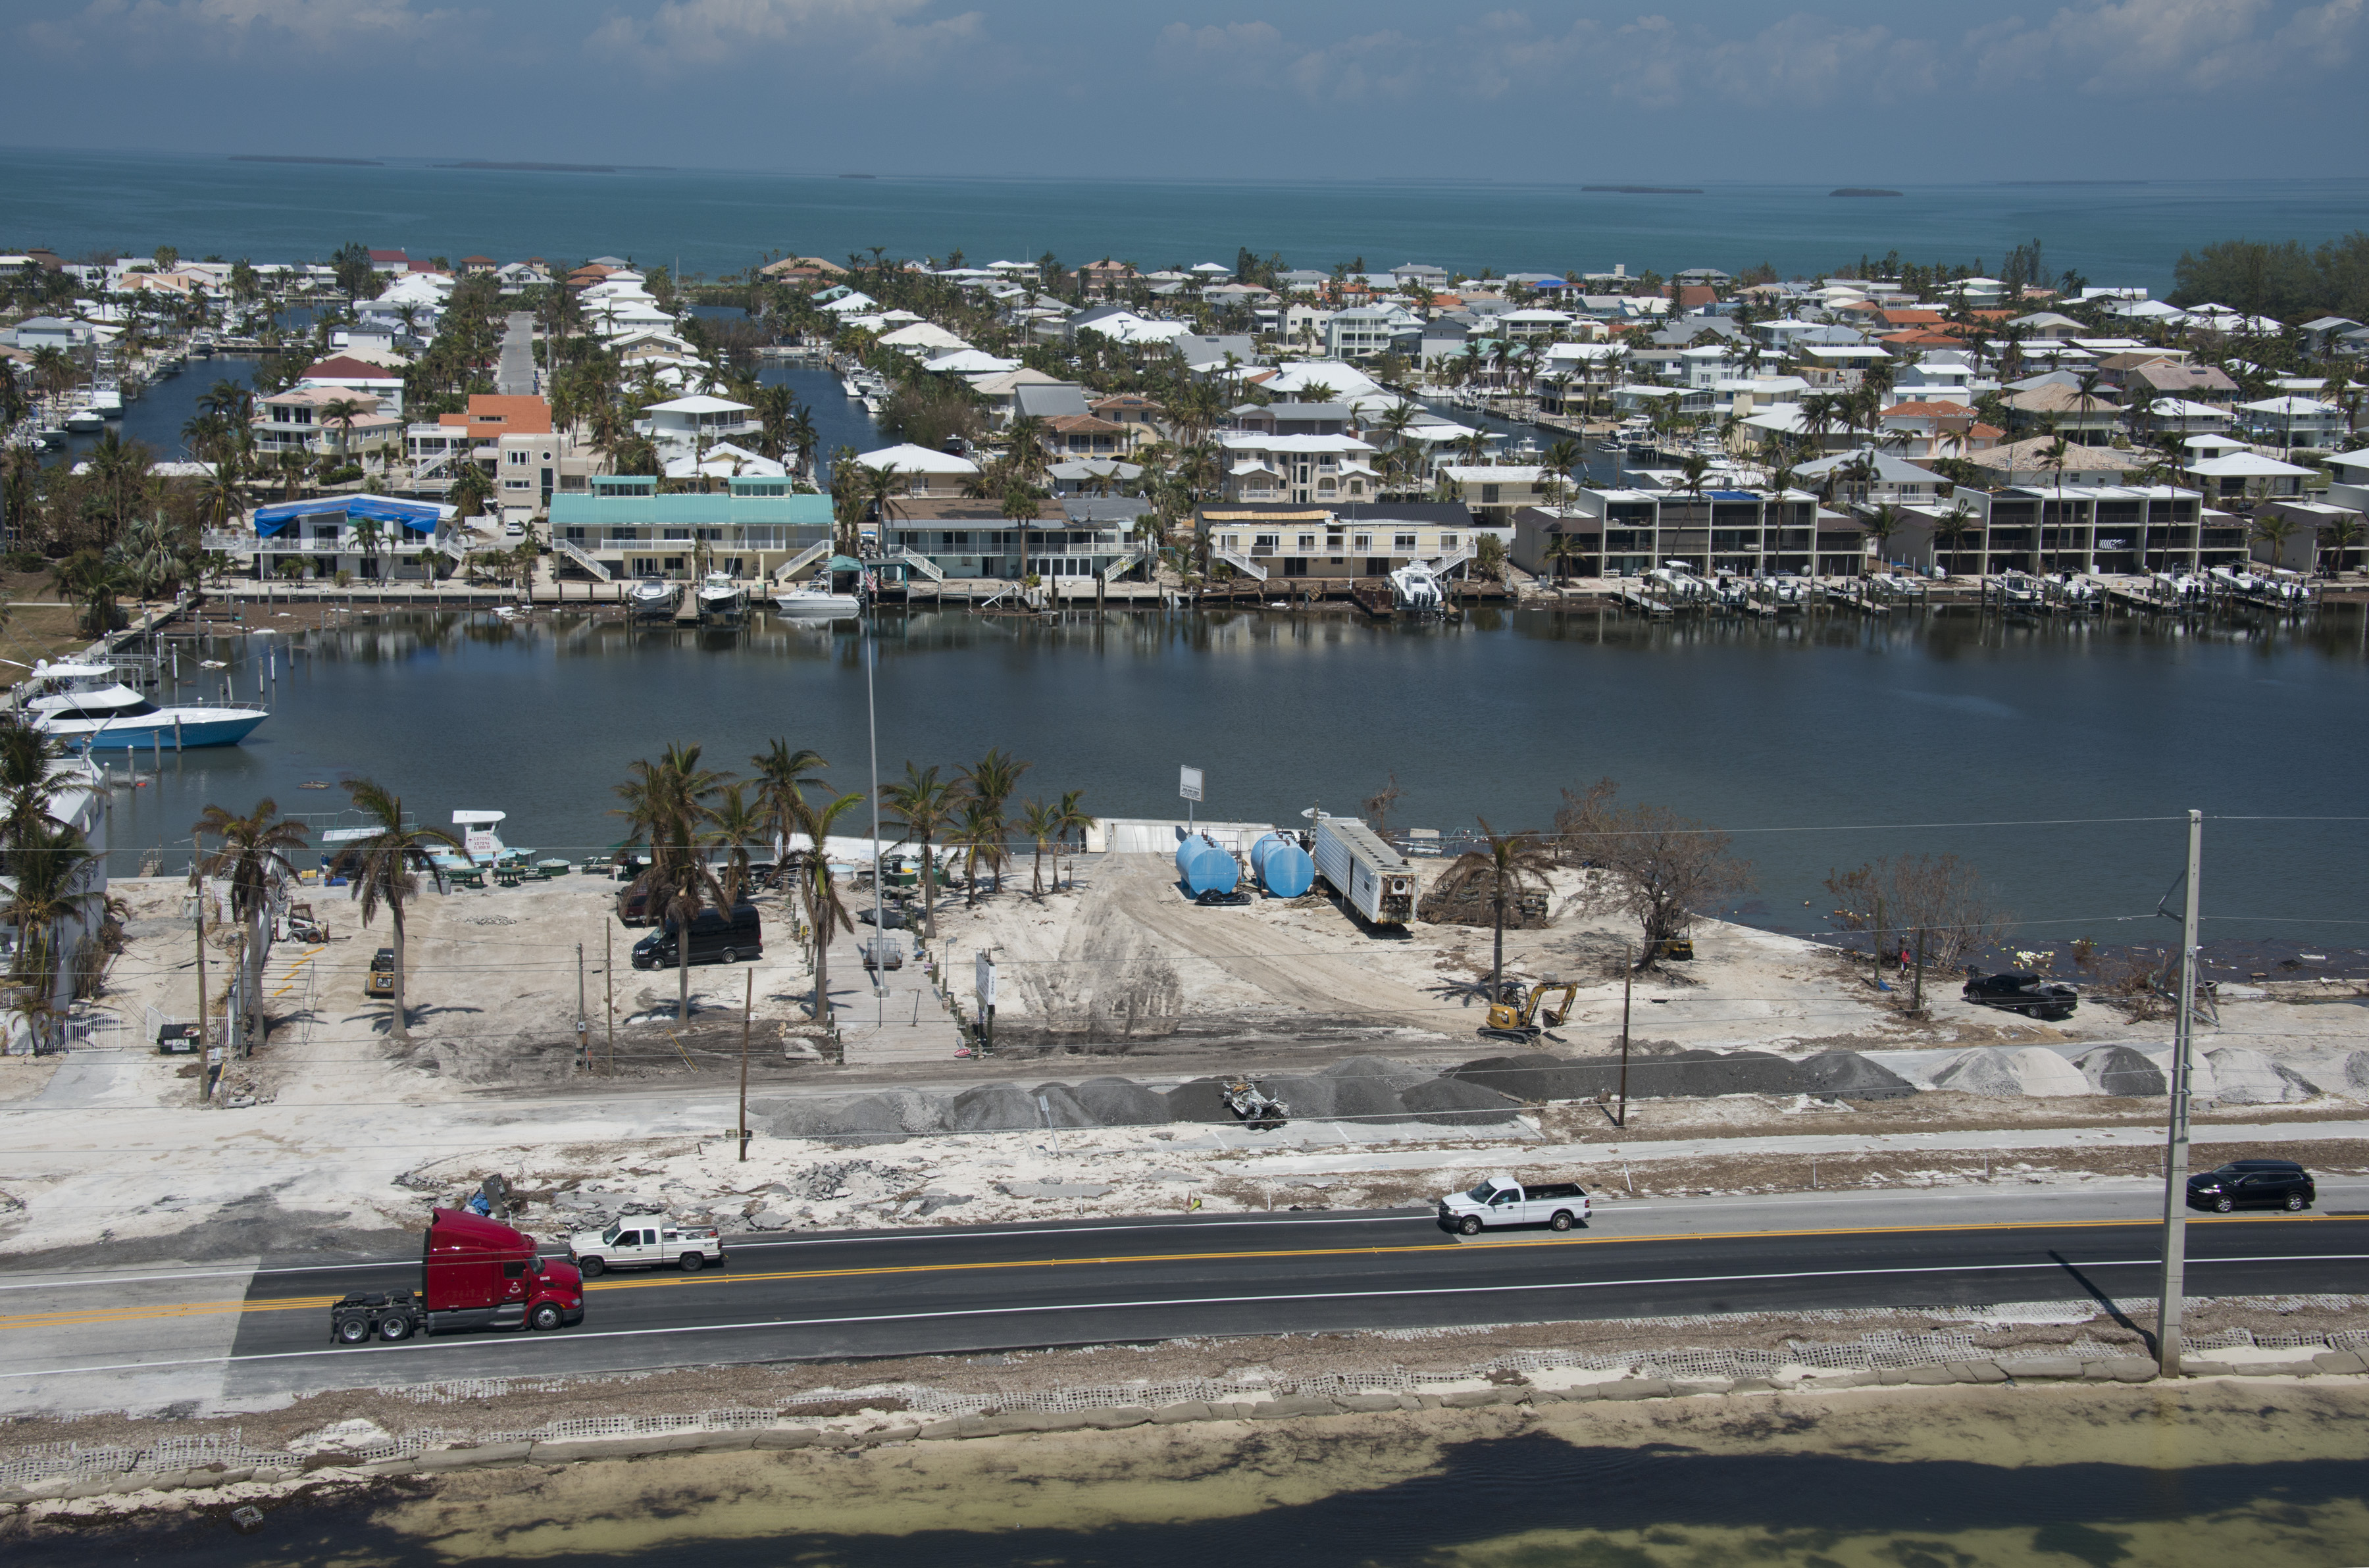 In this handout photo provided by the Florida Keys News Bureau, traffic rolls on a repaired section of the Florida Keys Overseas Highway on Sept. 19, 2017, in Islamorada, Florida.